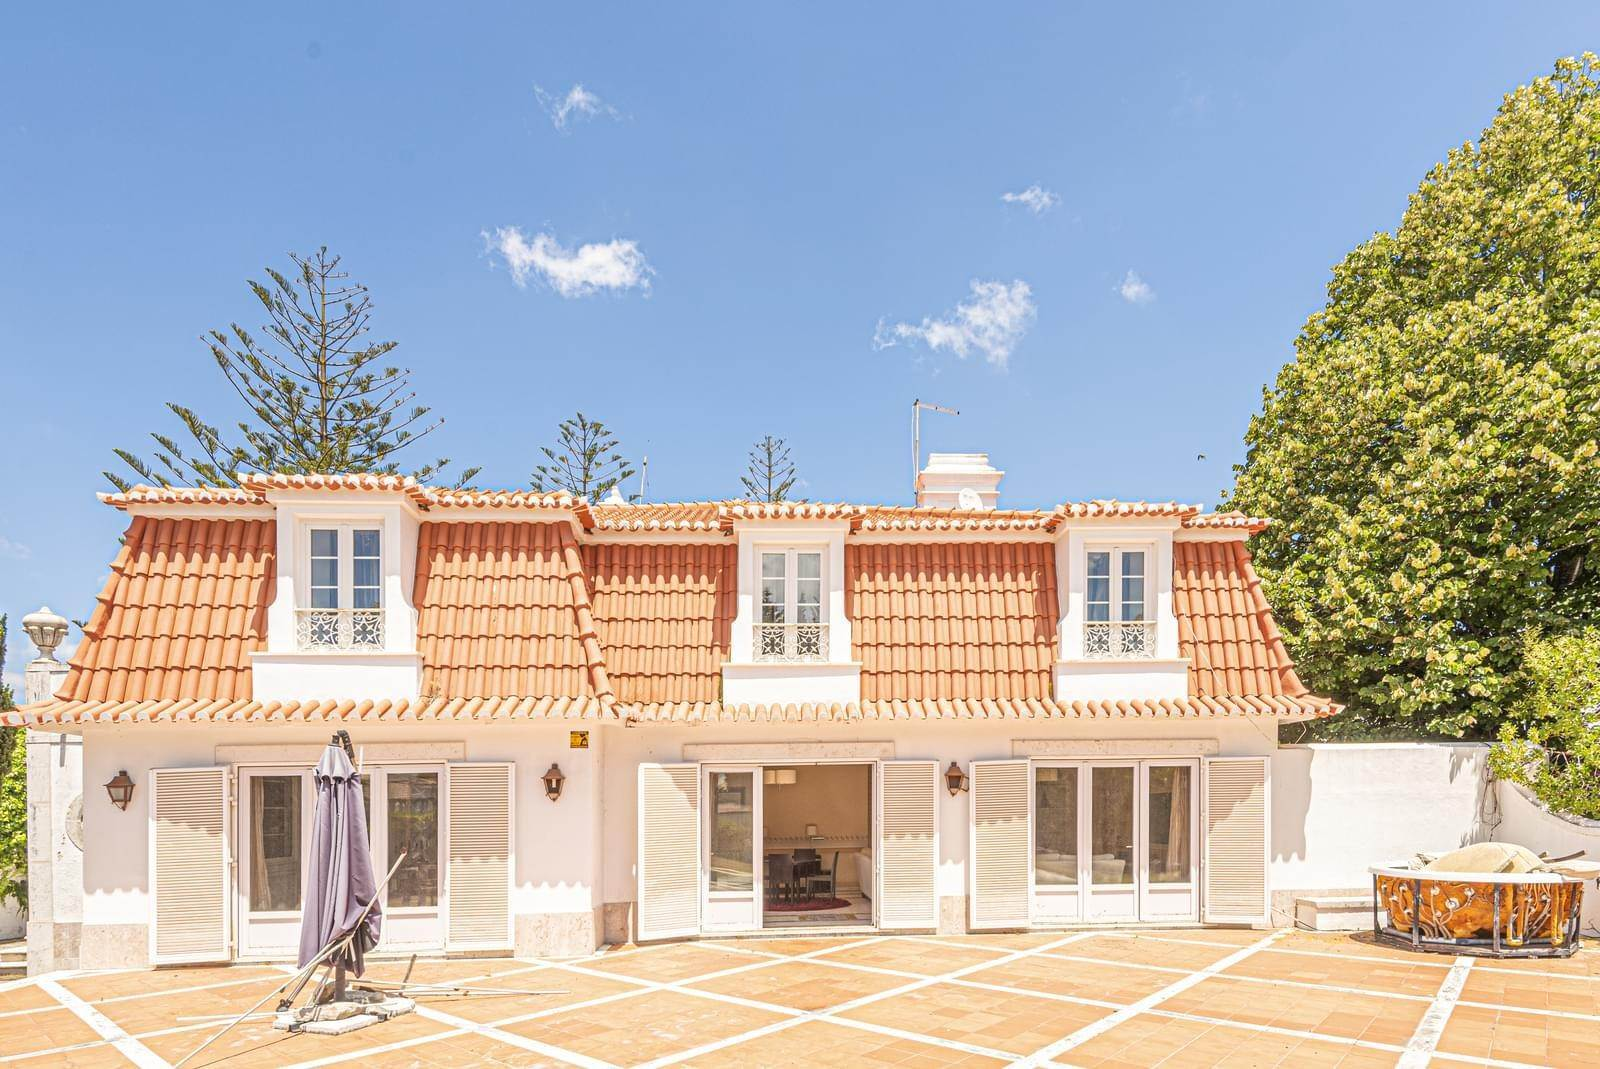 8. Villa/Townhouse for Sale at 9 bedroom villa, located in a quiet area in Cascais, only 8 minutes away, on foot, to the centre of Cascais.The villa is... Cascais, Portugal